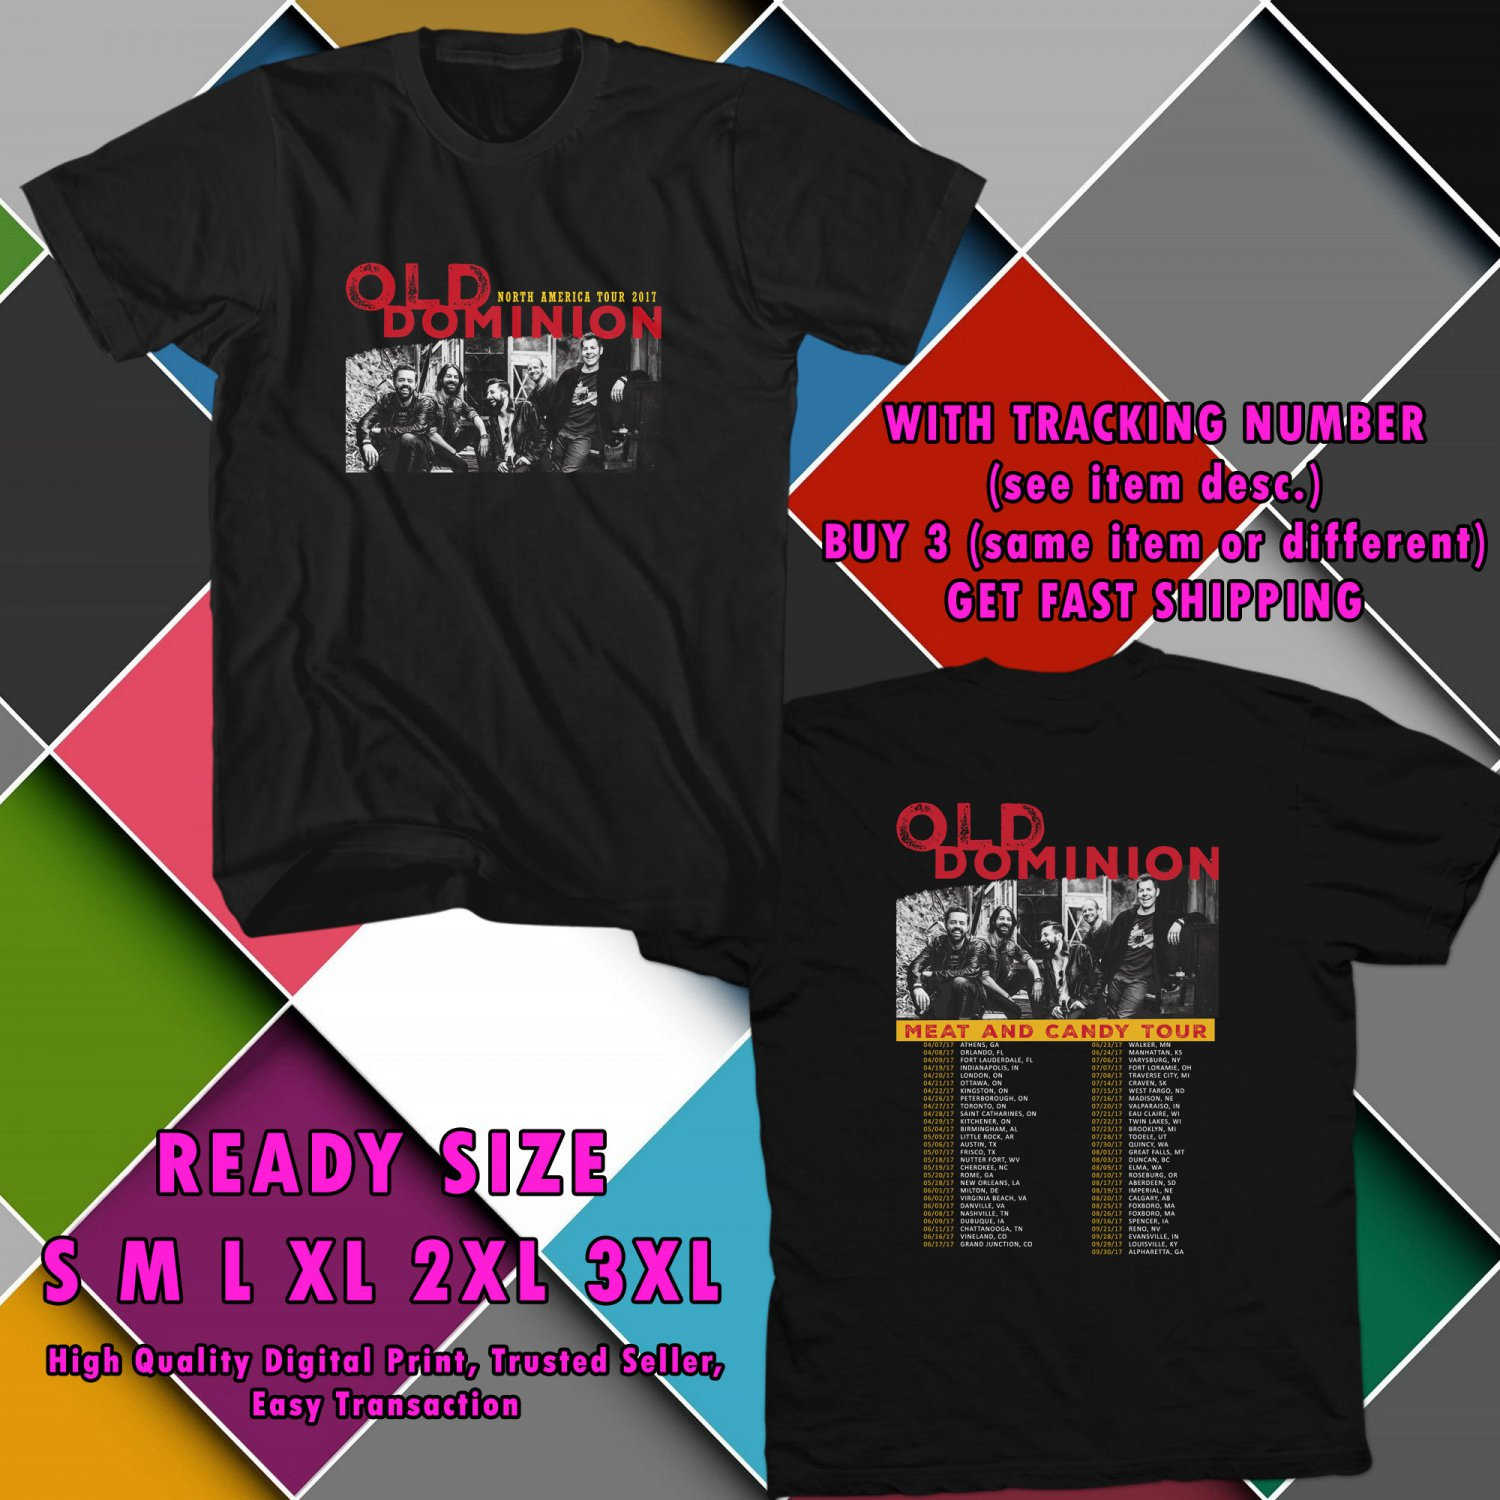 NEW OLD DOMINION NOSUCHTHINGASBROKEN HEART TOUR 2017 BLACK TEE 2 SIDE DMTR 443